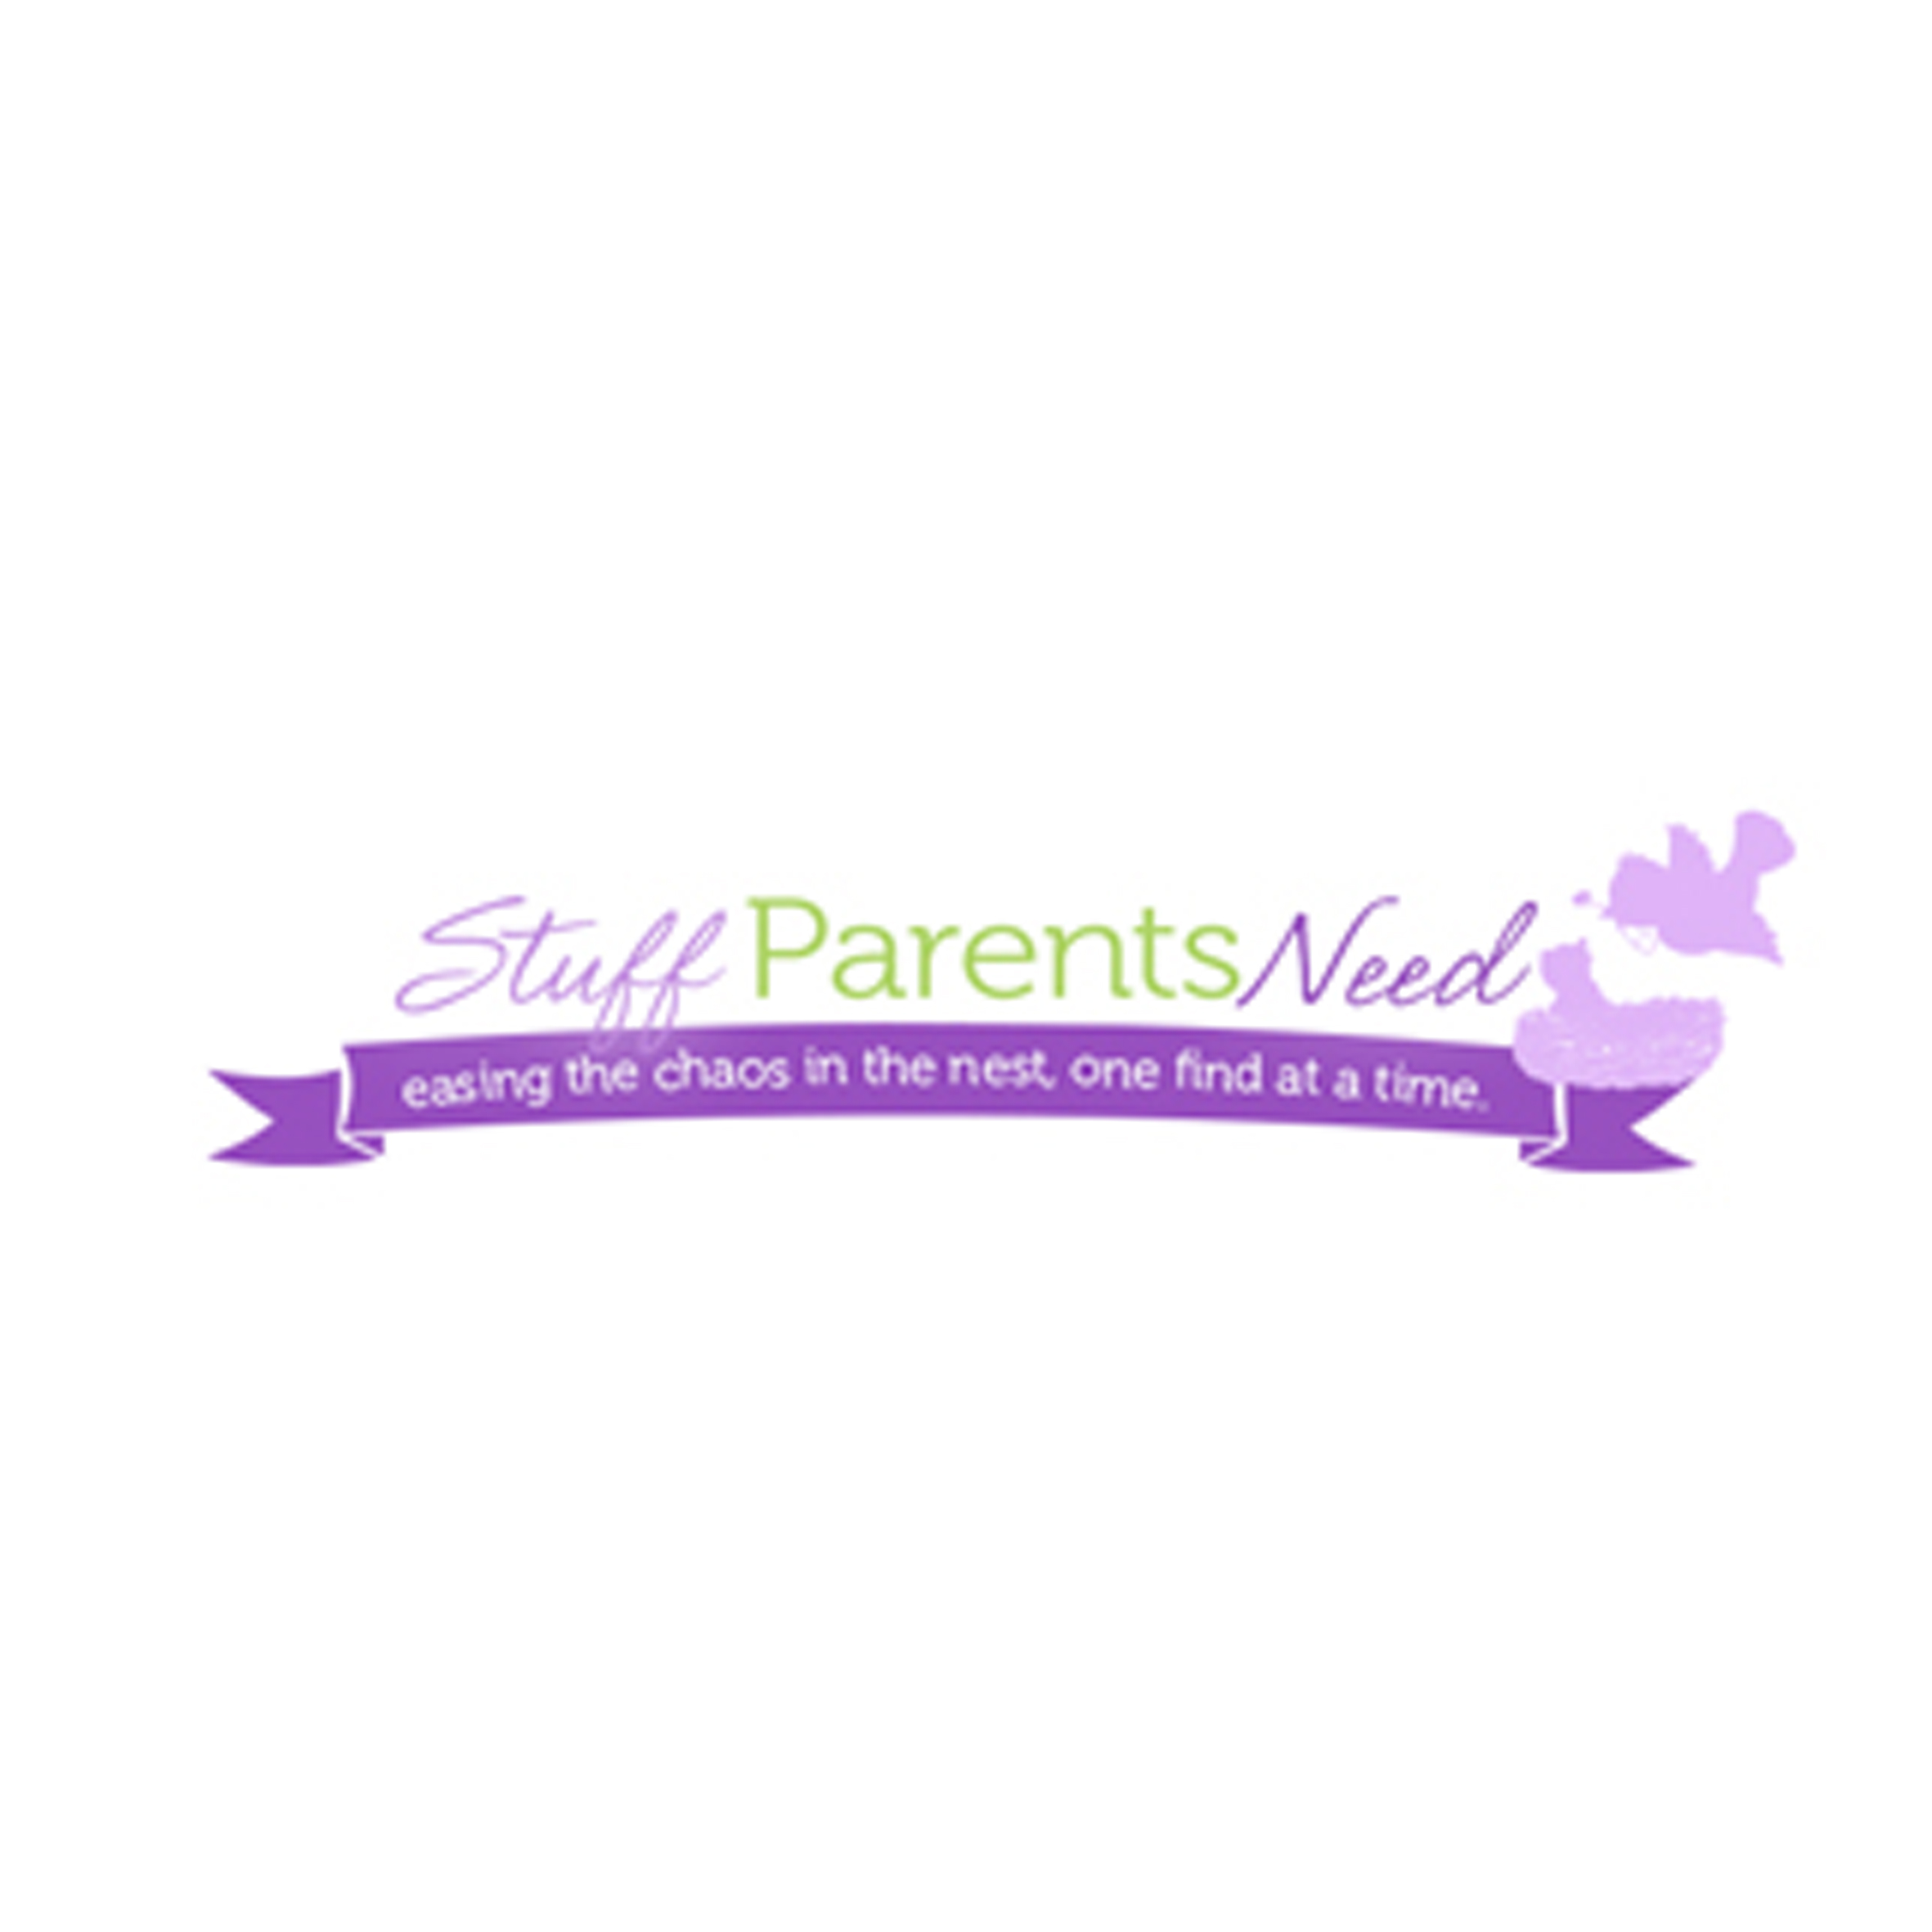 stuff_parents_need_larixpress_news